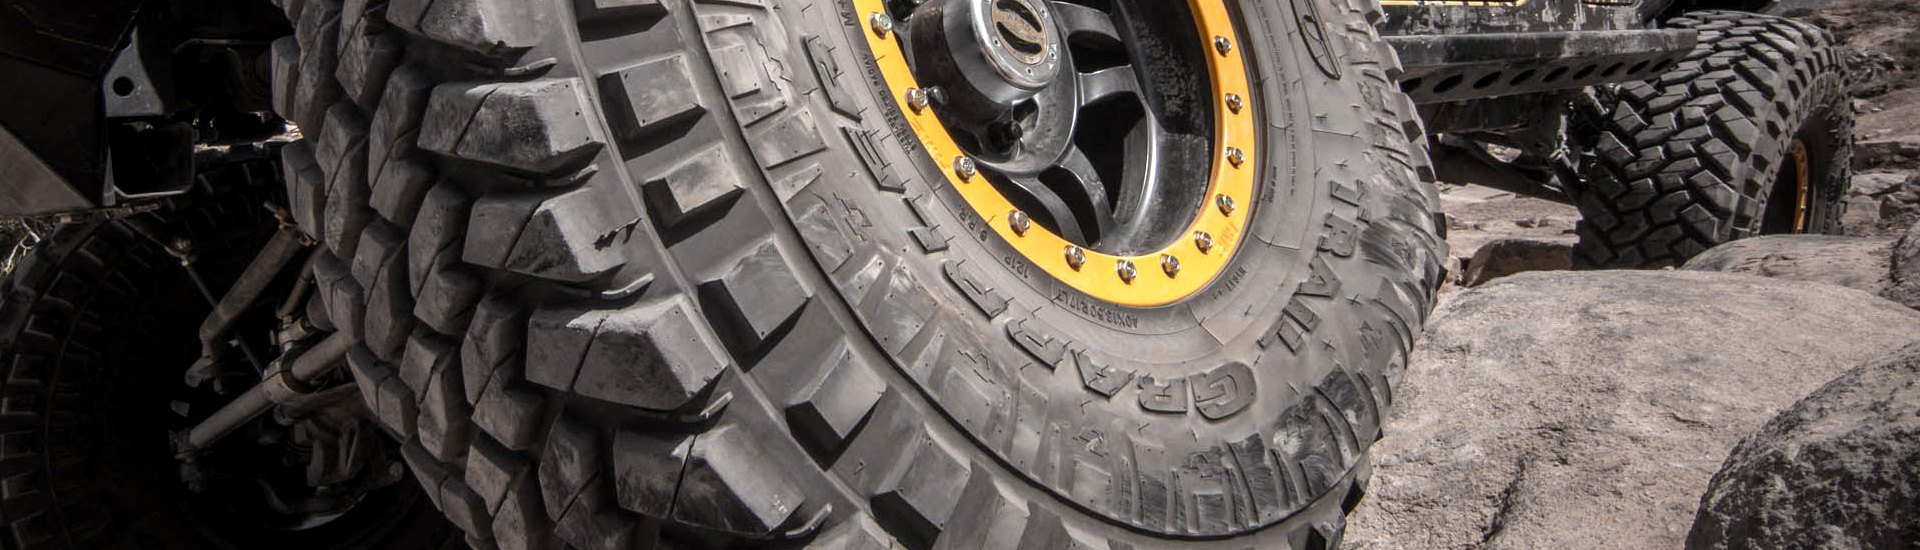 2005 ford f150 stx tire size